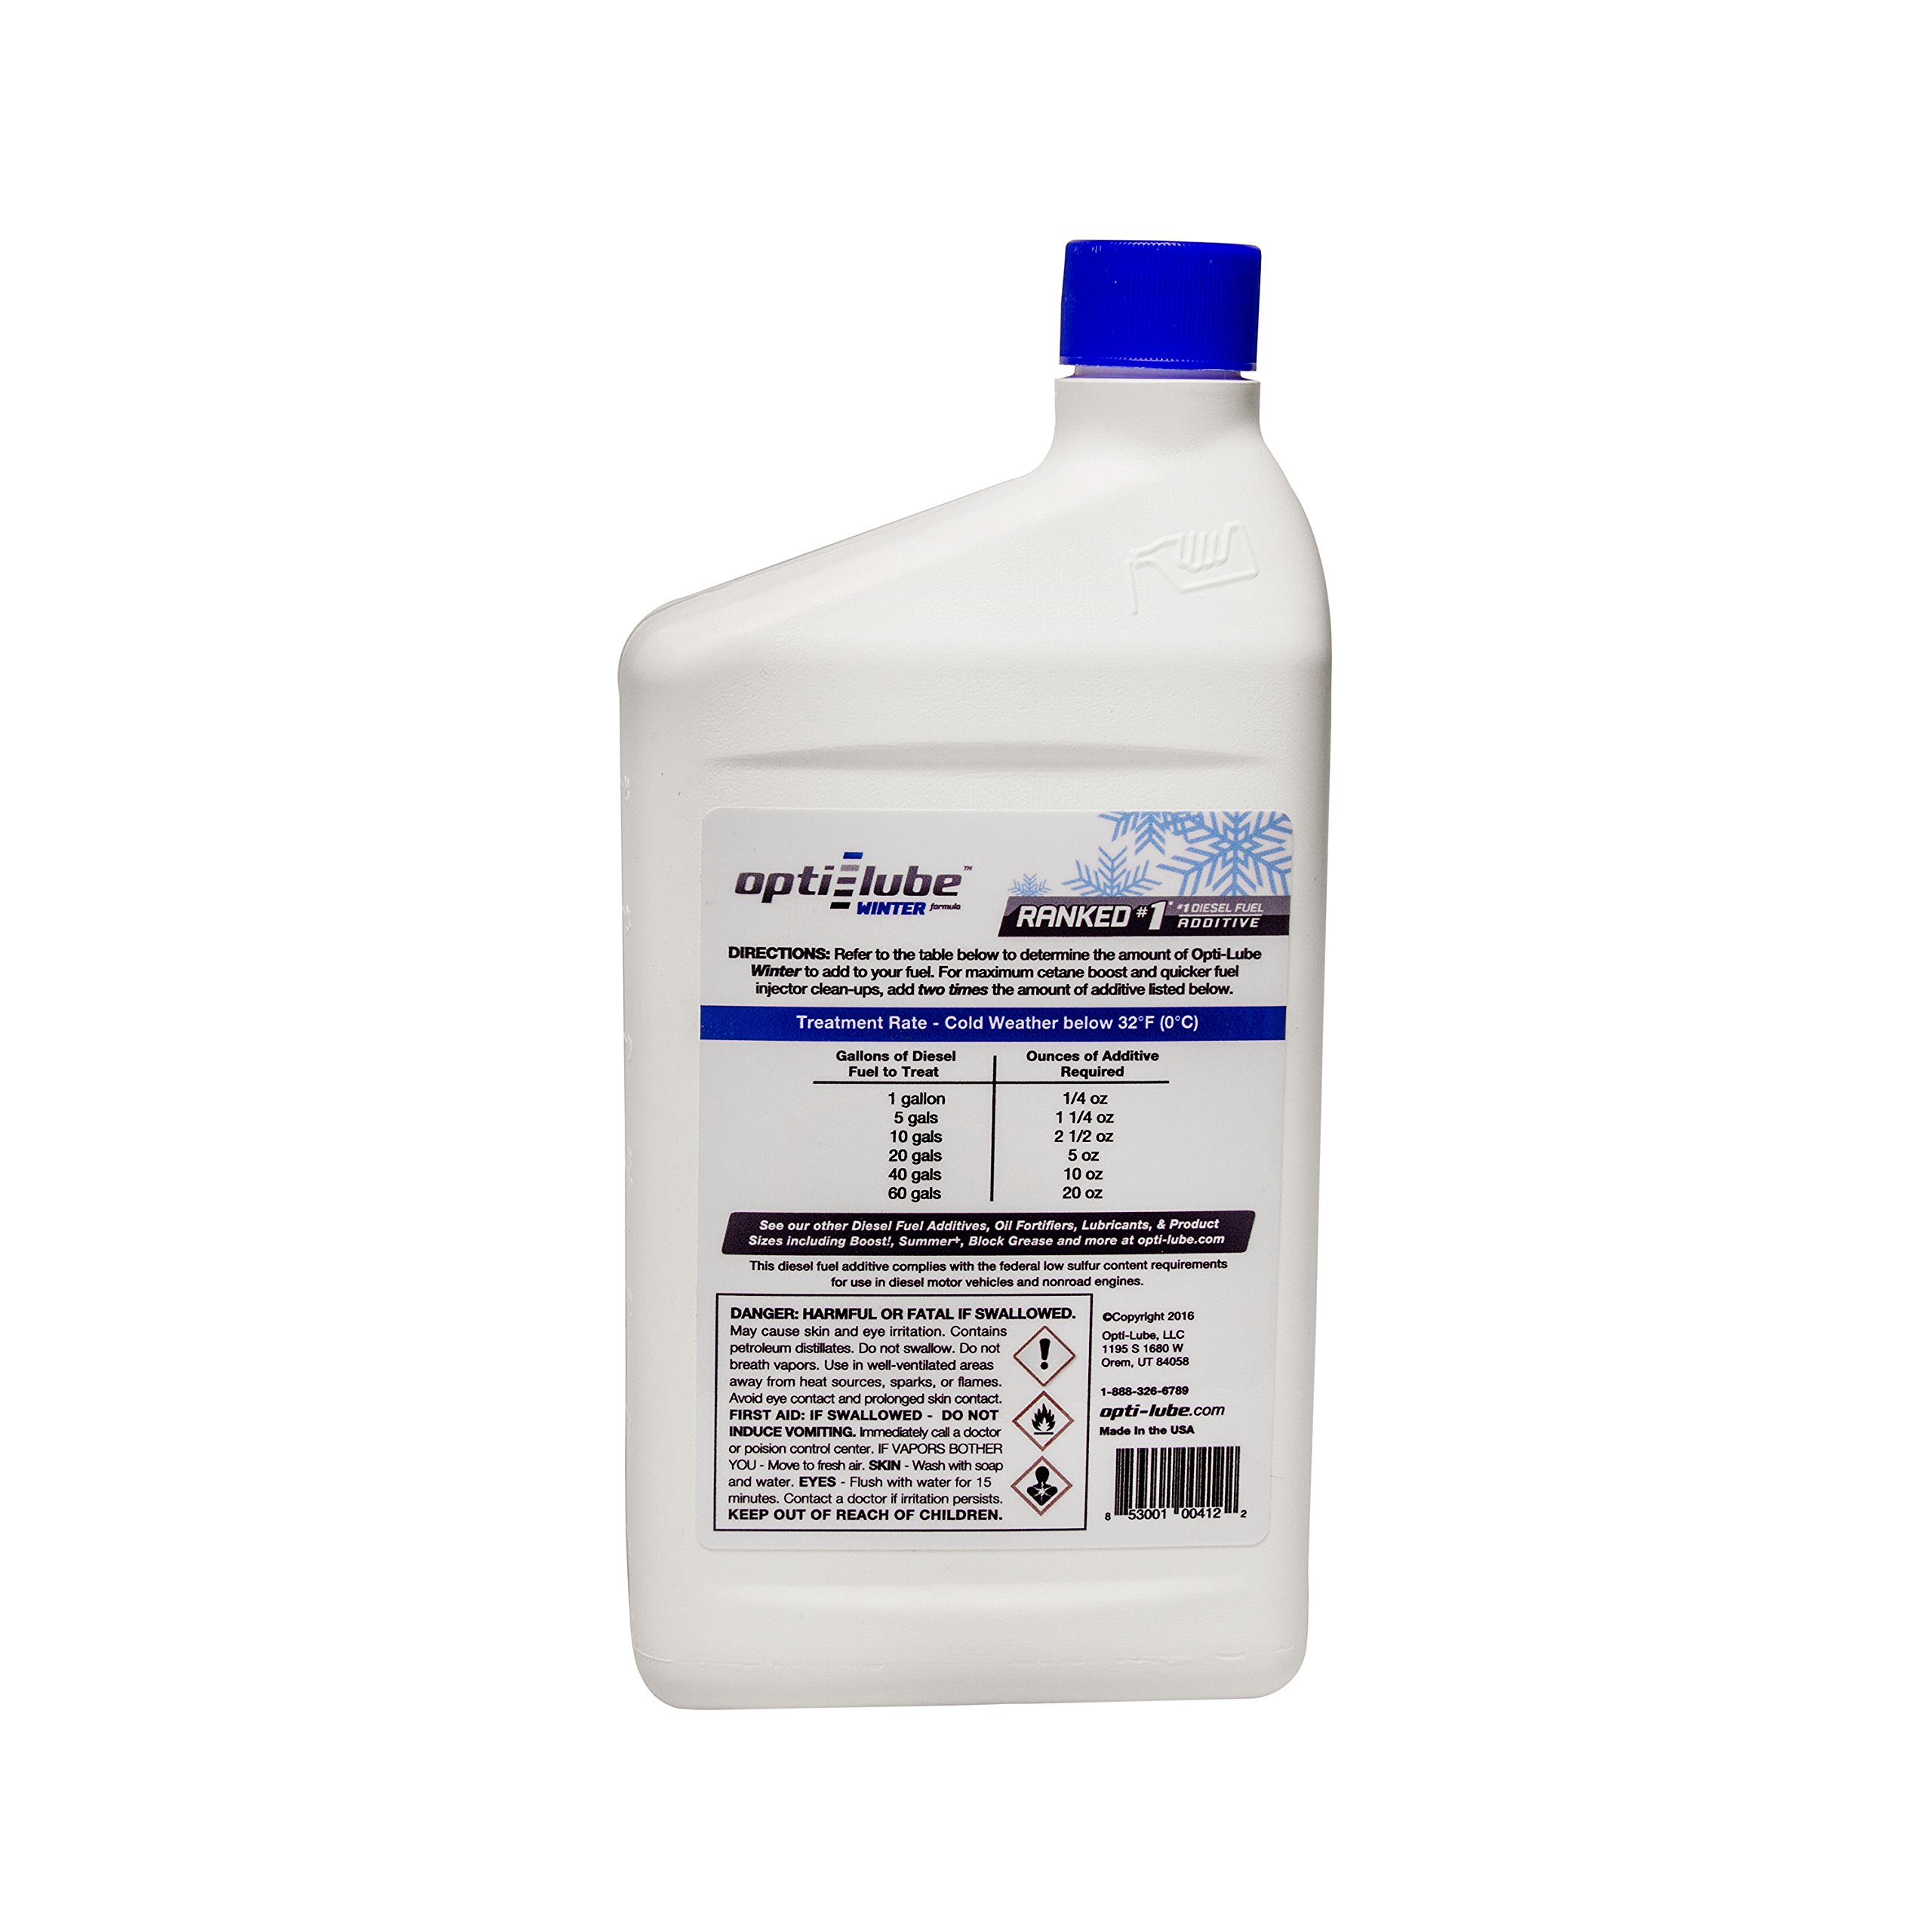 Opti-Lube Winter Formula Diesel Fuel Additive: Quart, Case of 12. Treats up to 128 Gallons per Quart